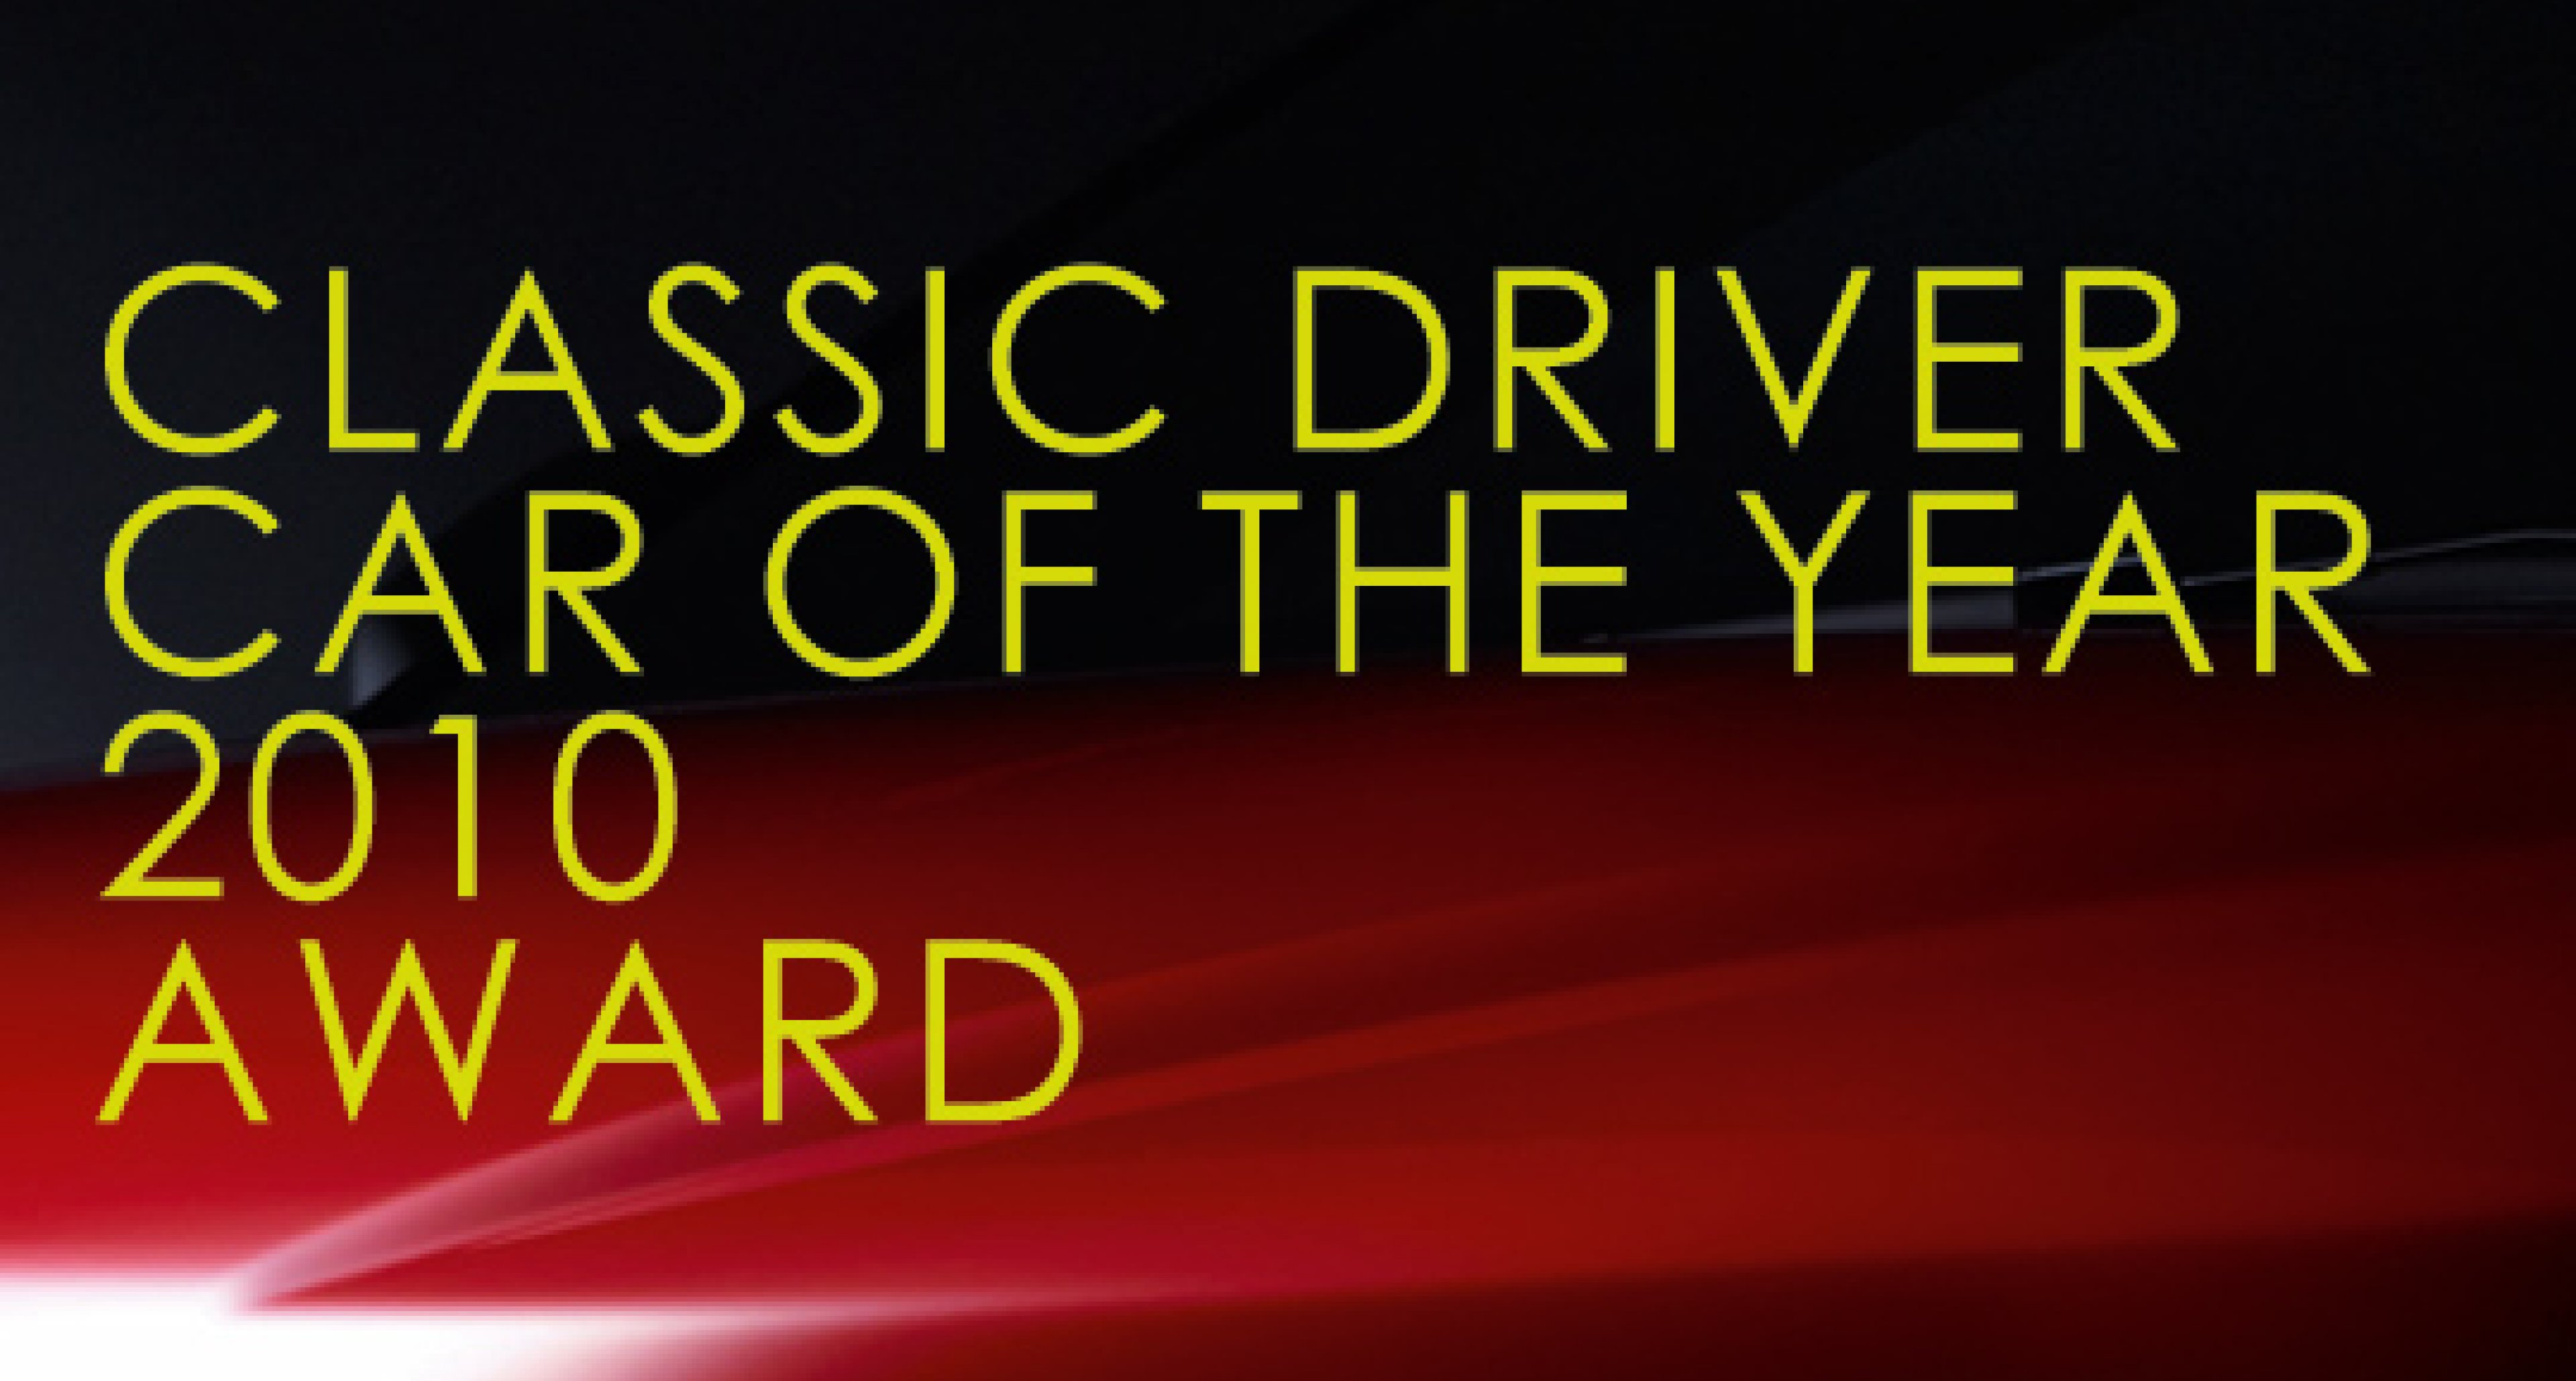 Classic Driver Car of the Year 2010: the Winners